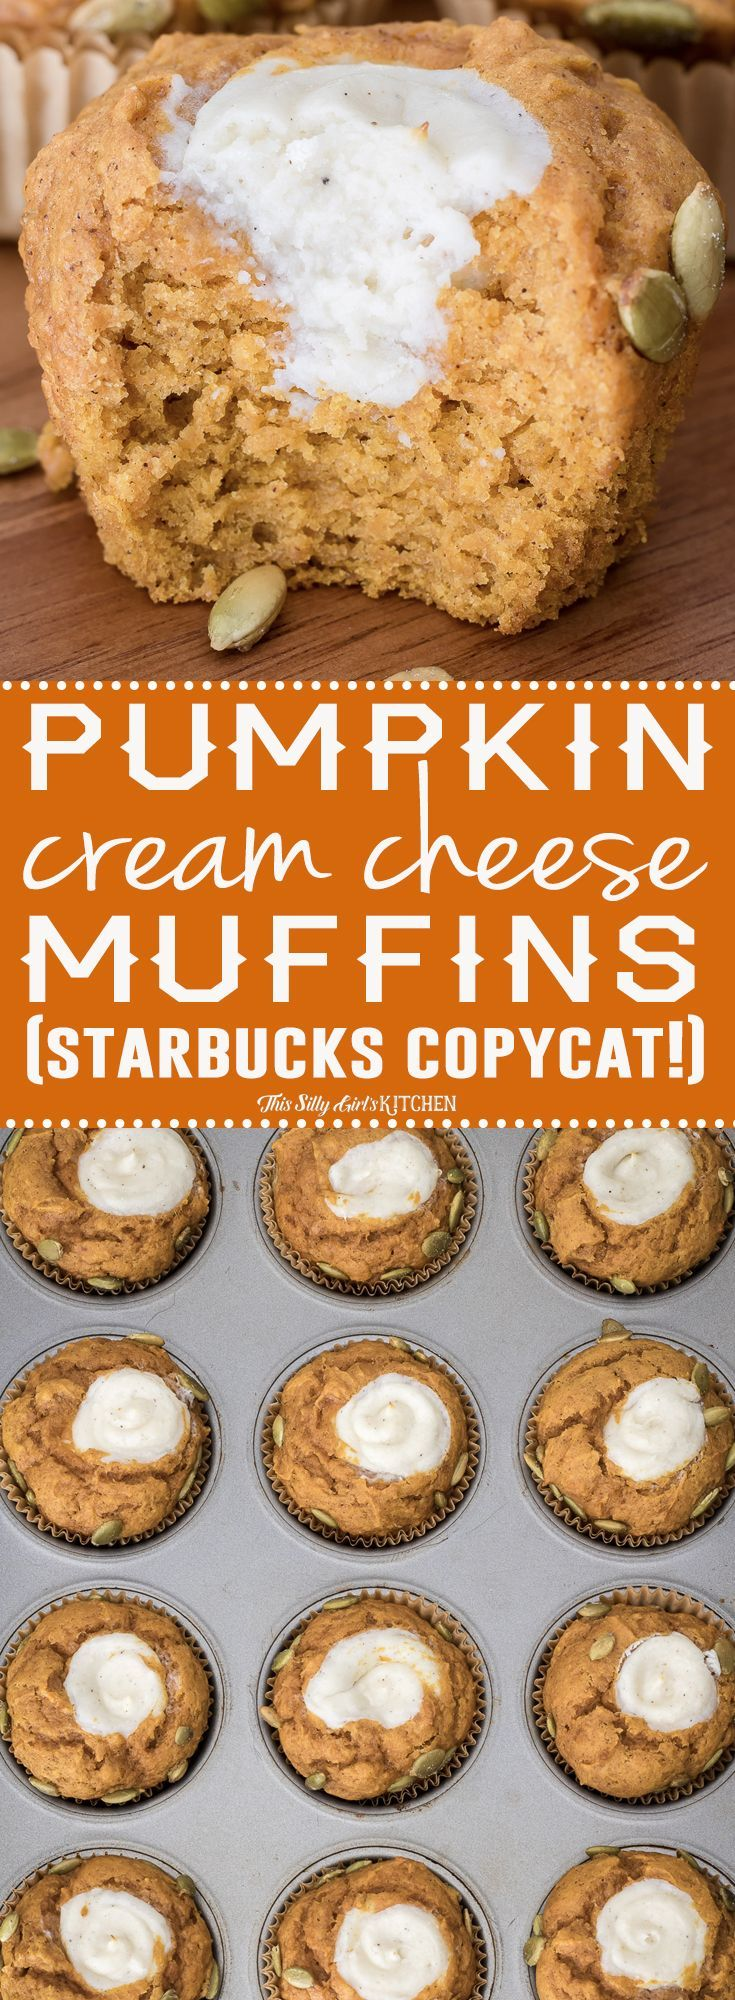 Pumpkin Cream Cheese Muffins (Starbucks Copycat!) #pumpkinmuffins